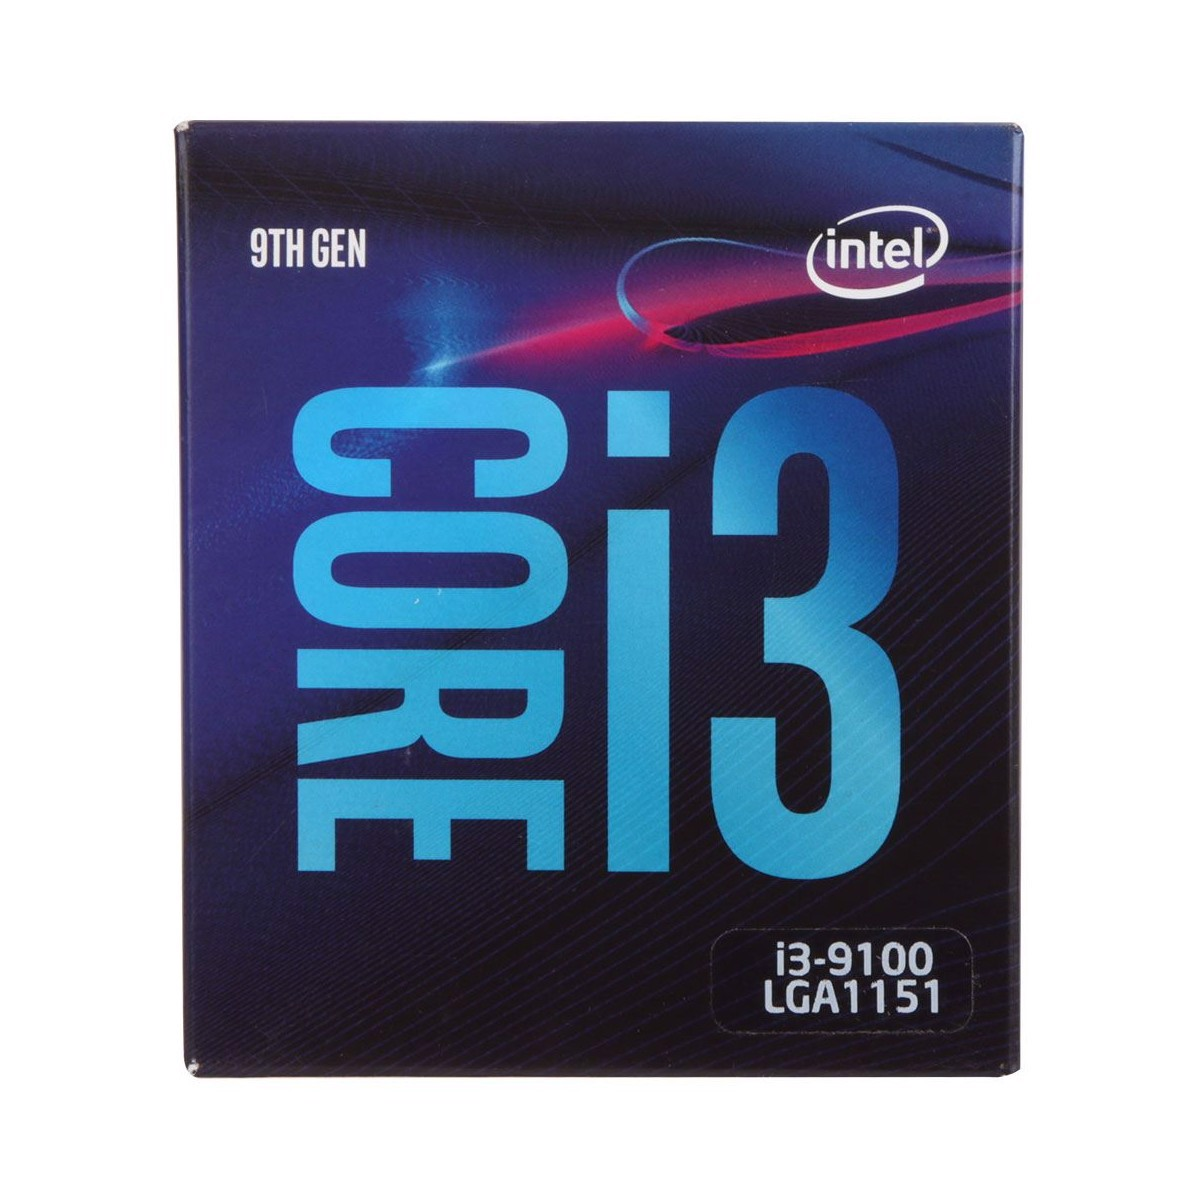 CPU Intel Core i3 9100 (Up to 4.20Ghz/ 6Mb cache) Coffee Lake